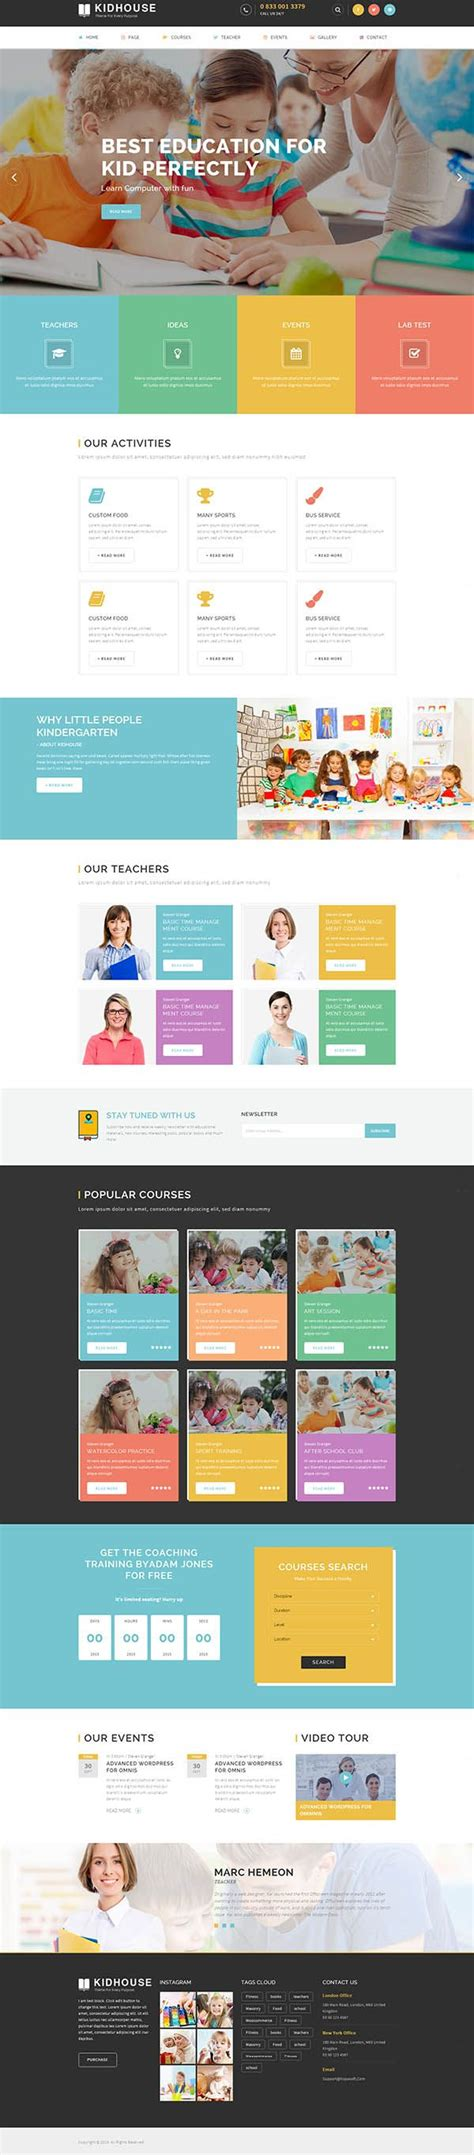 designspiration wordpress theme 1000 ideas about photography website design on pinterest